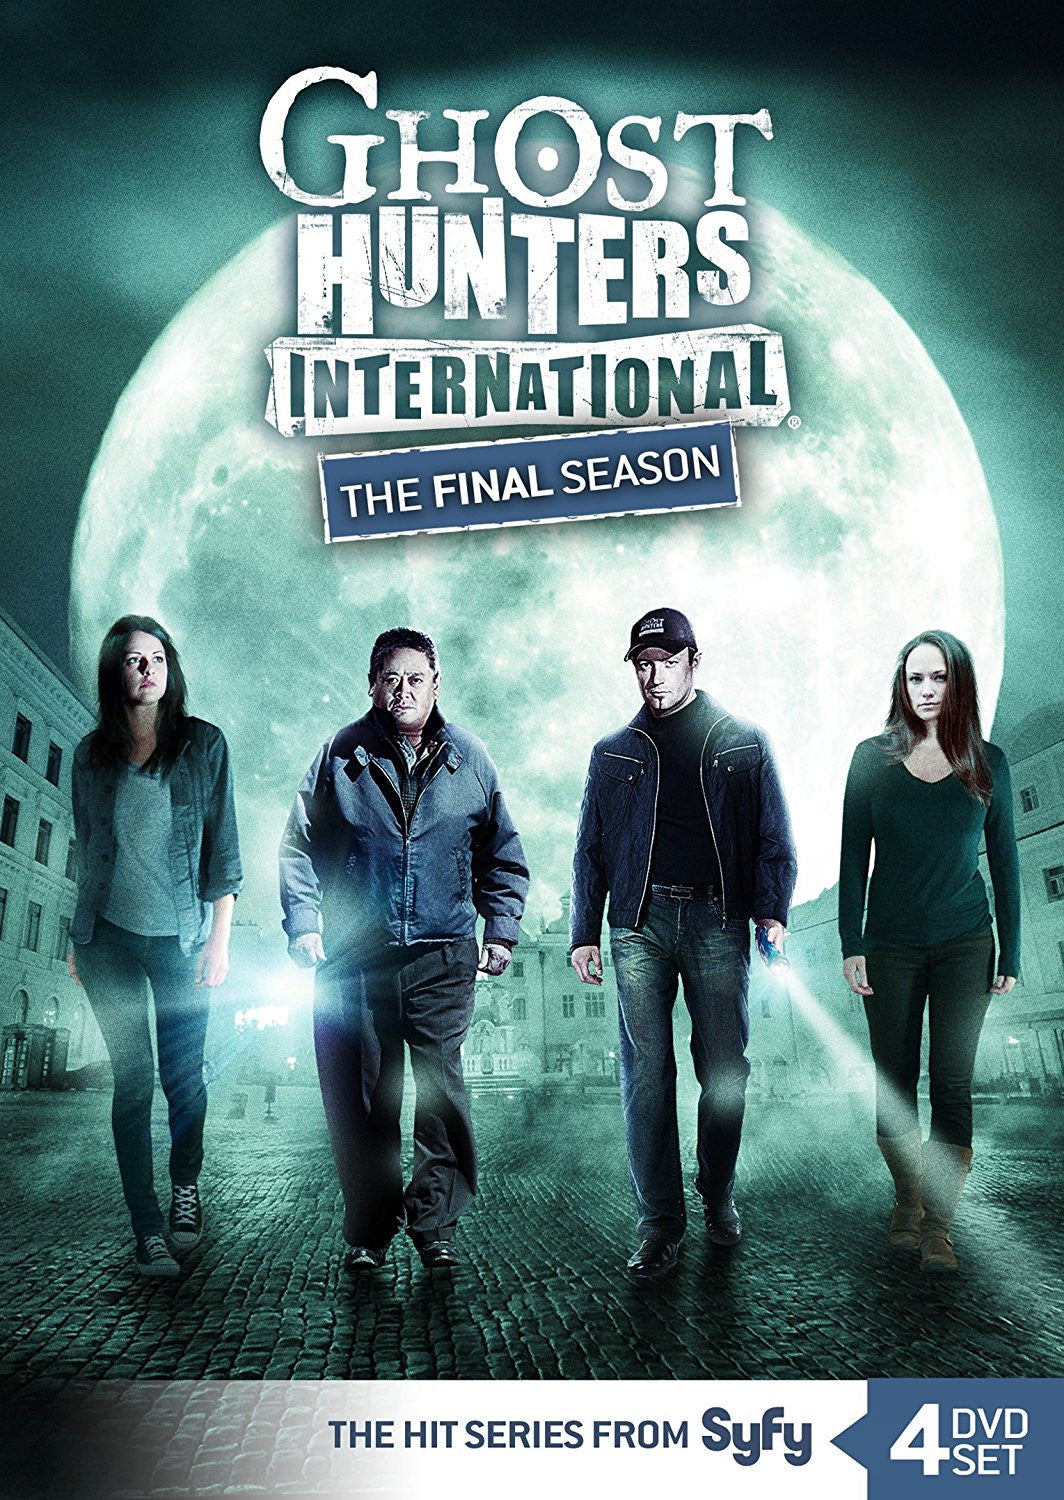 Ghost Hunters International The Final Season Collector's DVD Set